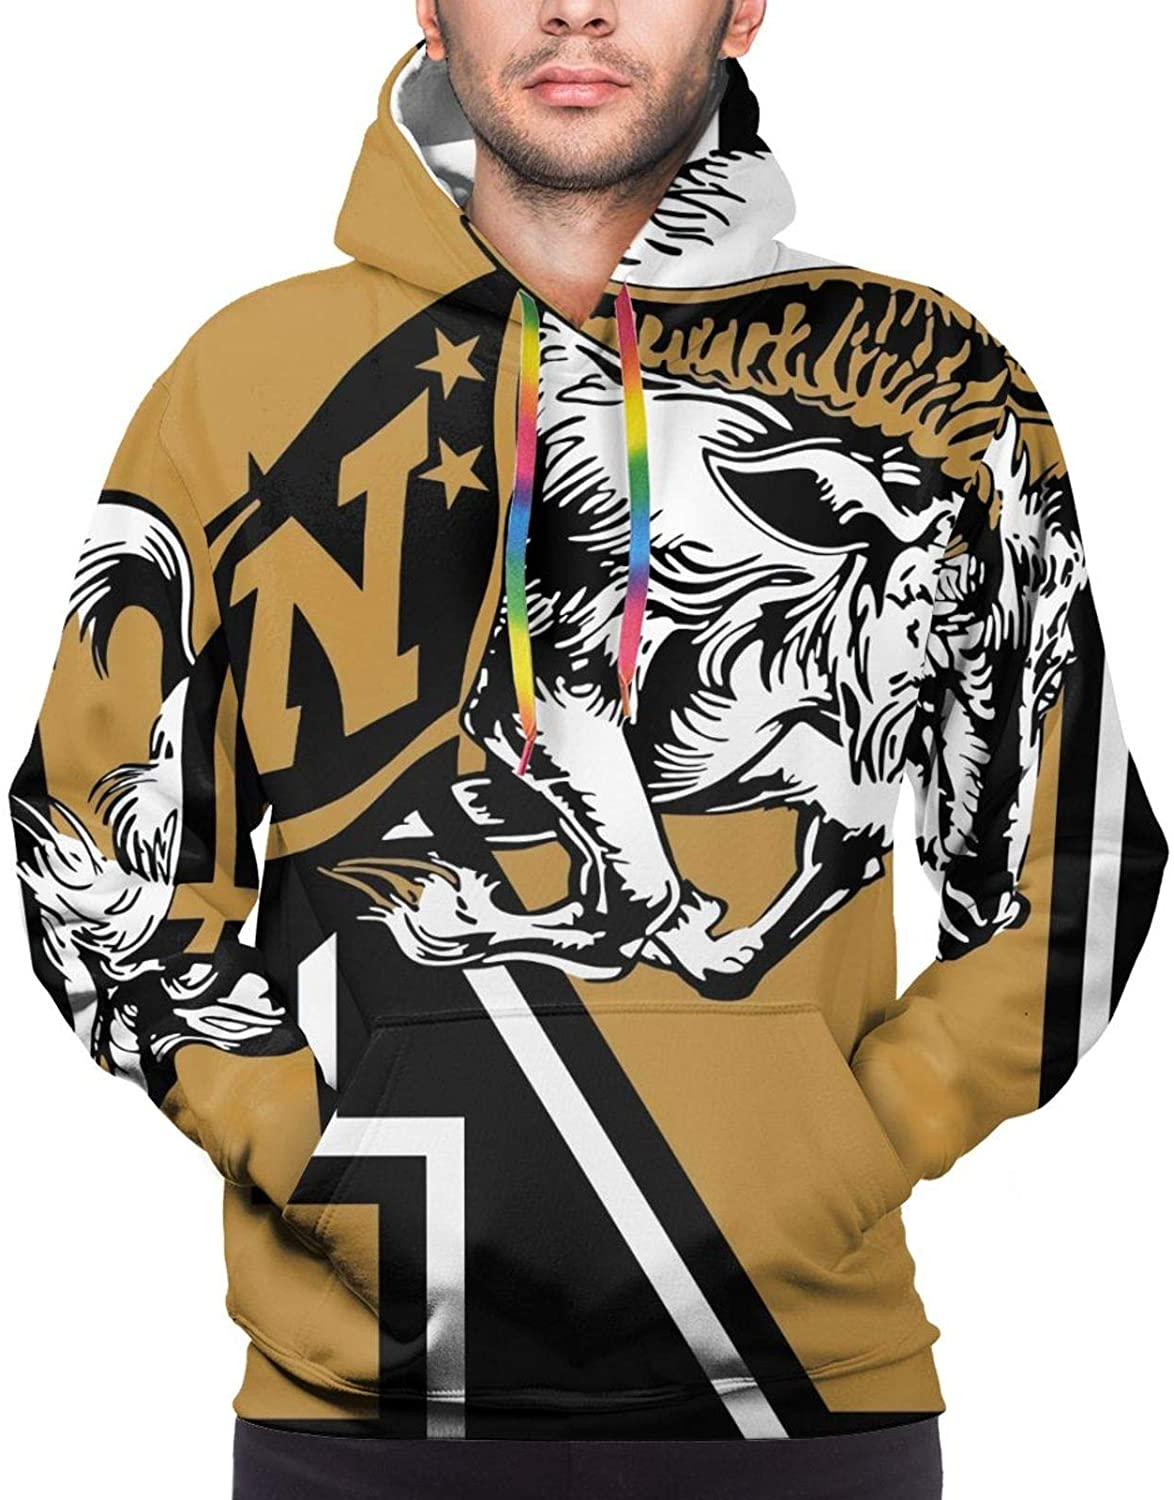 Shanke Fashion United States Naval Academy 3D Graphic Printed Men's Hoodie Sweater Comfortable Wear Resistant